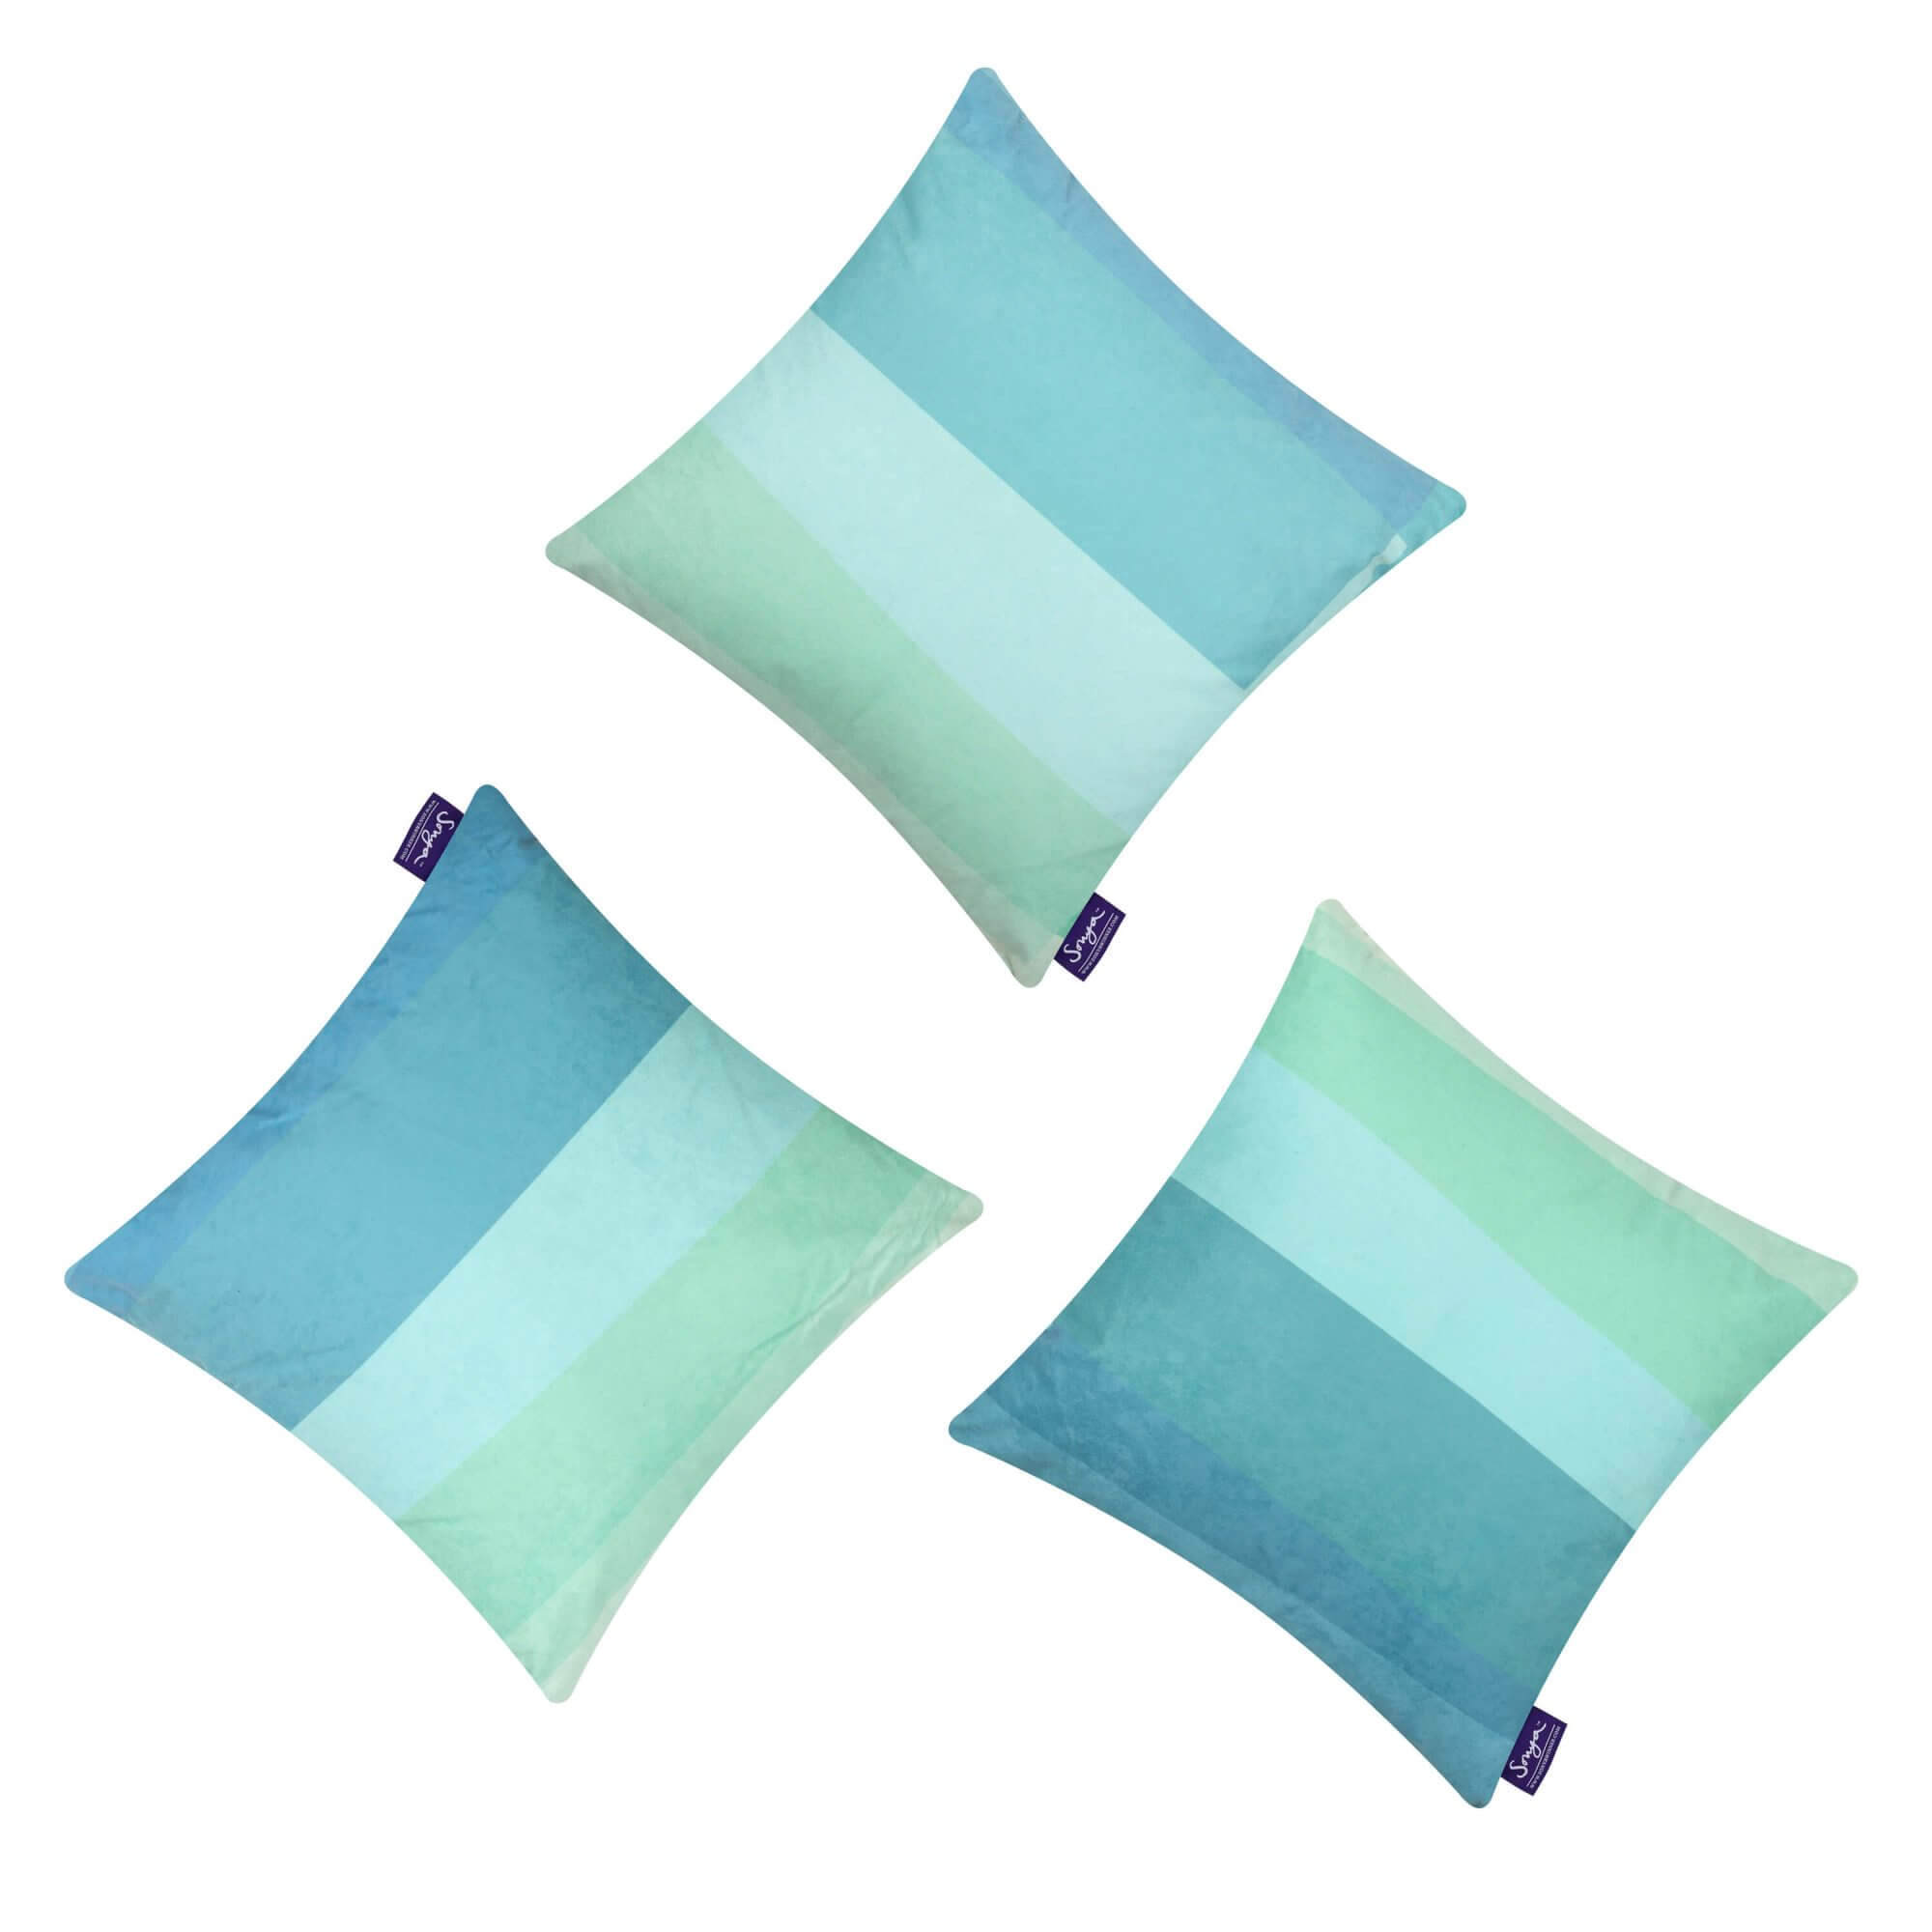 A Cropped Detail Image Of The Square Aqua Teal Sea 3 Pillows Set Showcasing